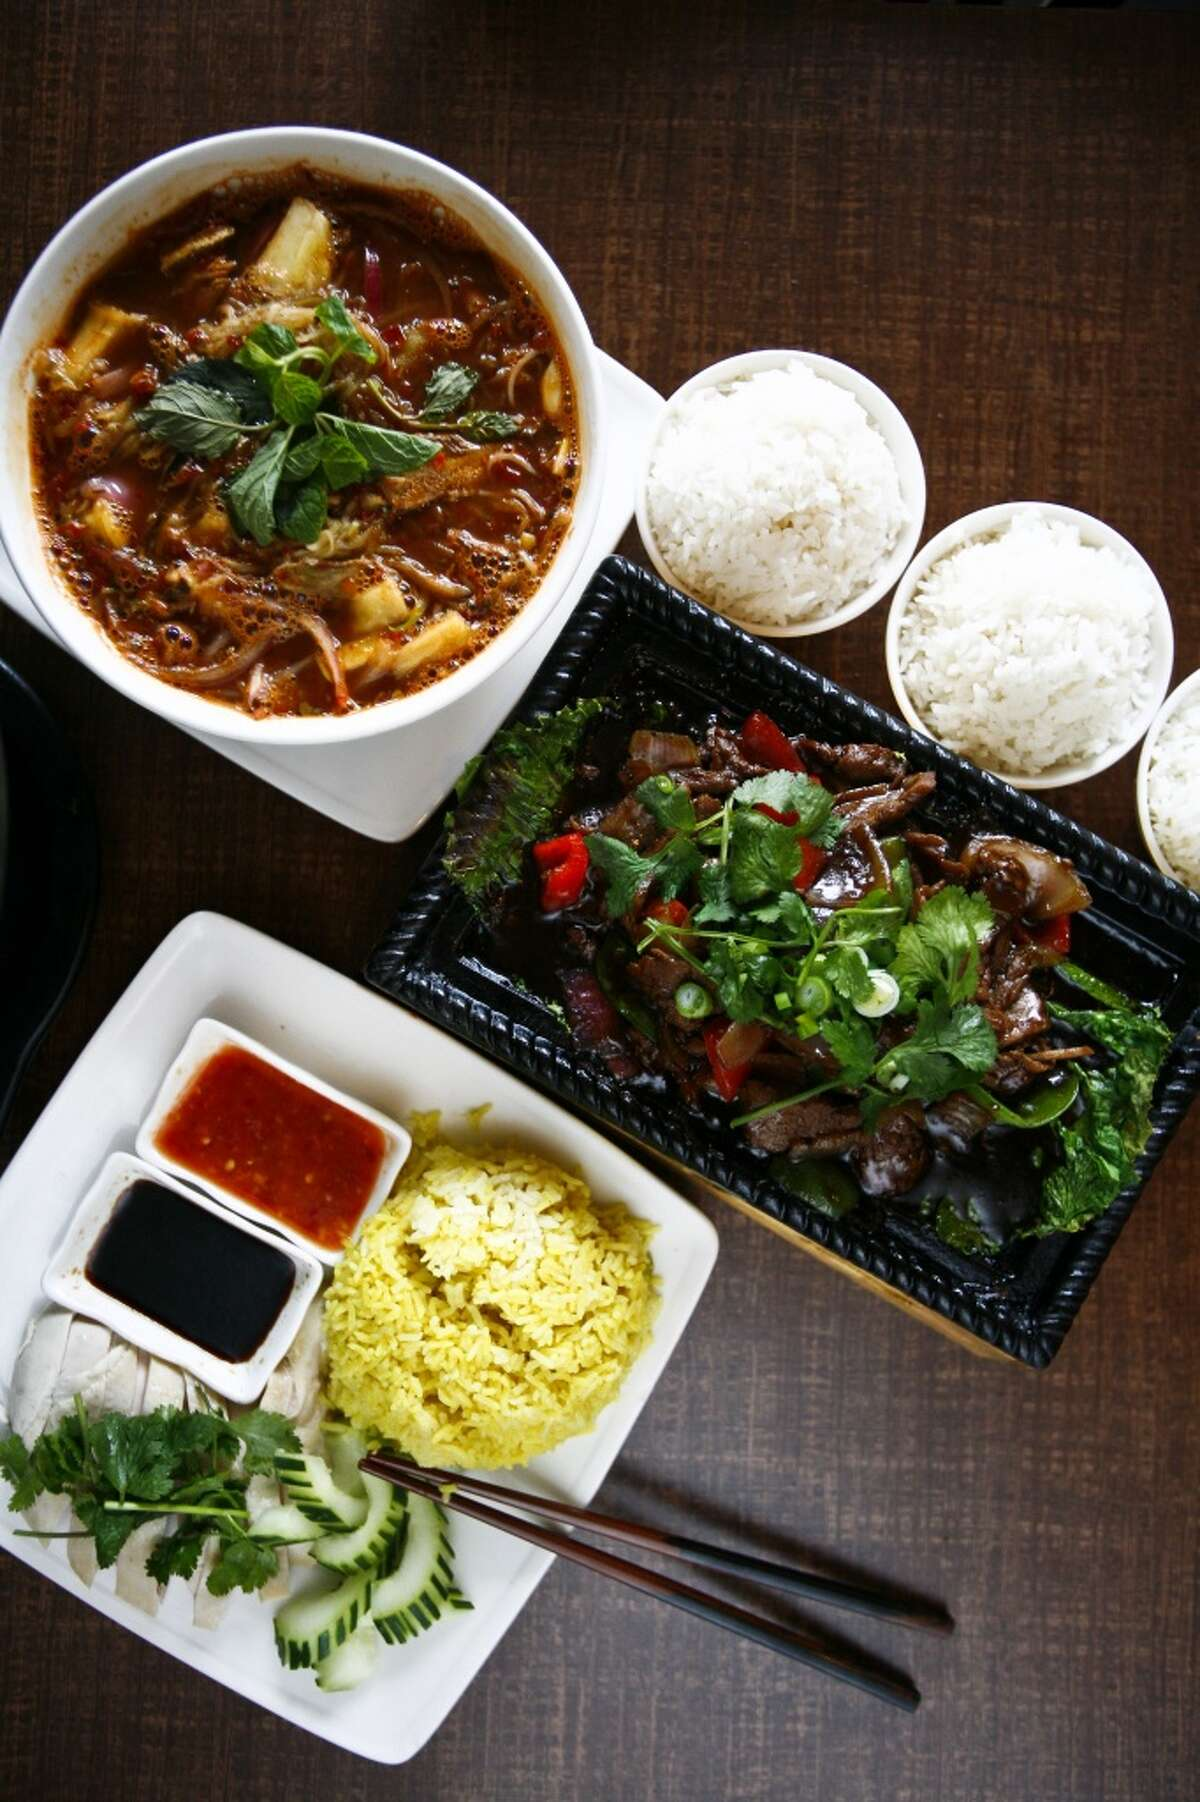 The Penang Assam Laksa noodle soup (top to bottom), the Sizzling Beef With Black Pepper platter and the Hainanese Chicken with Rice dish at Banana Leaf Malaysian Cuisine, 9889 Bellaire.